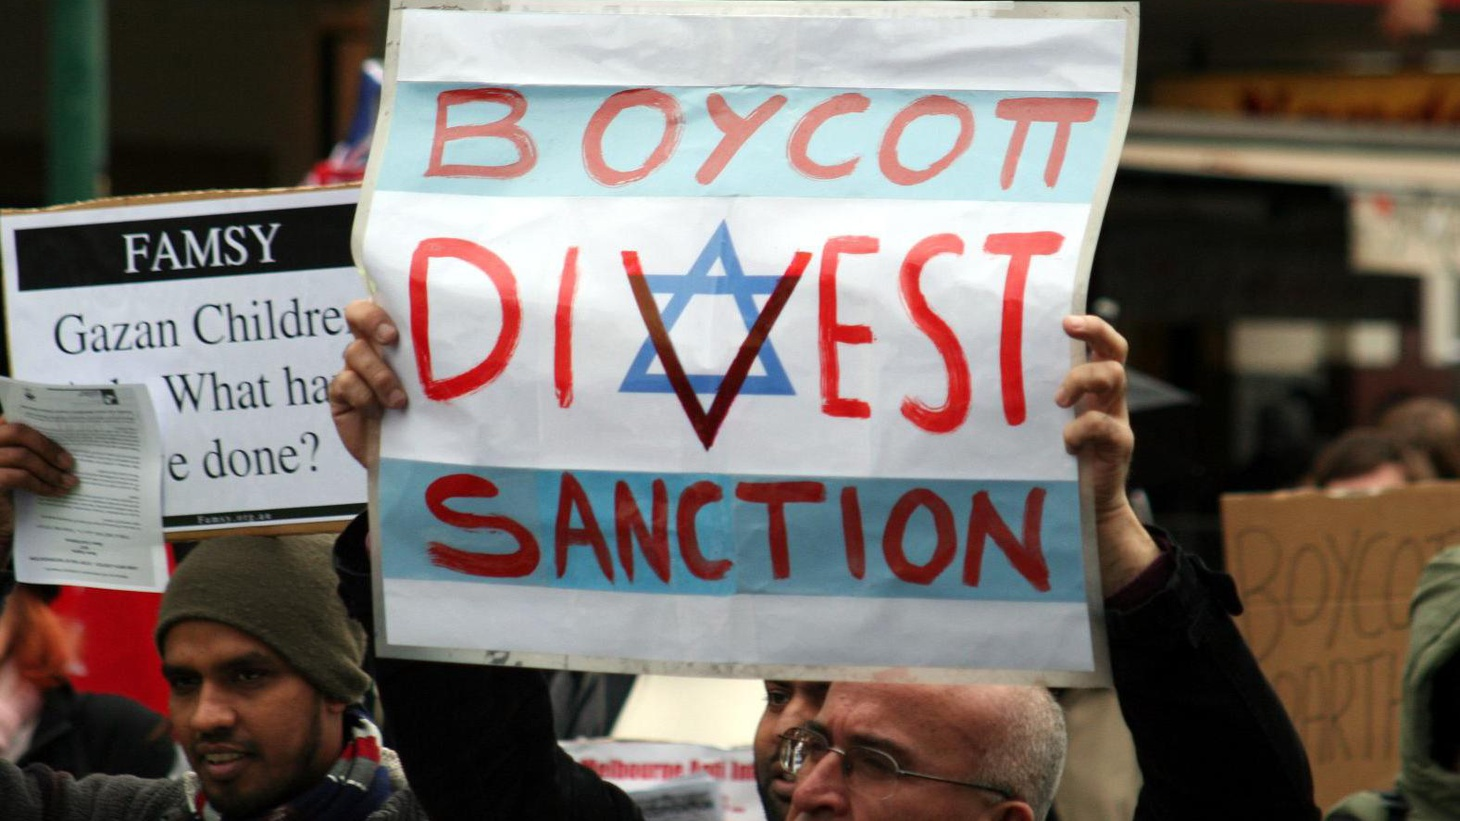 """A non-violent Palestinian call for """"boycott, divestment and sanctions"""" could damage Israel's economy with consequences for peace and a """"two-state solution."""""""